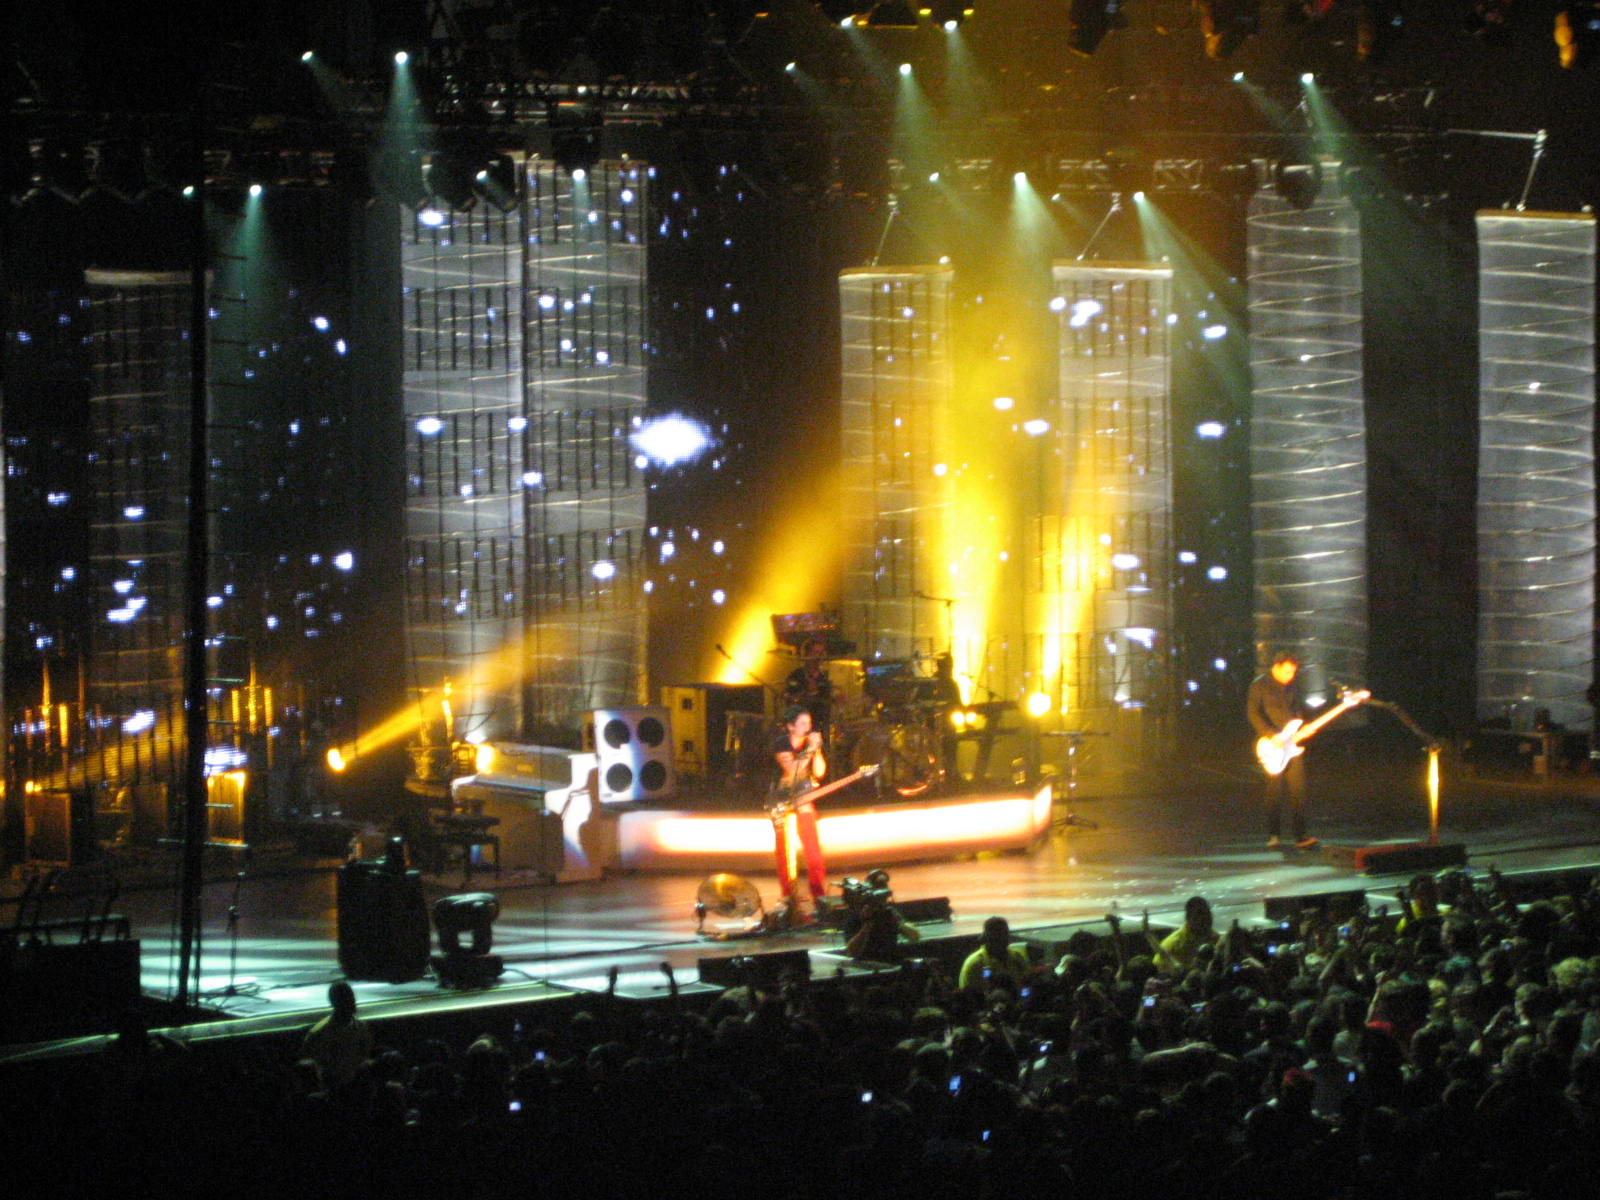 http://europeantravellingadvisor.files.wordpress.com/2008/10/muse-concert.jpg